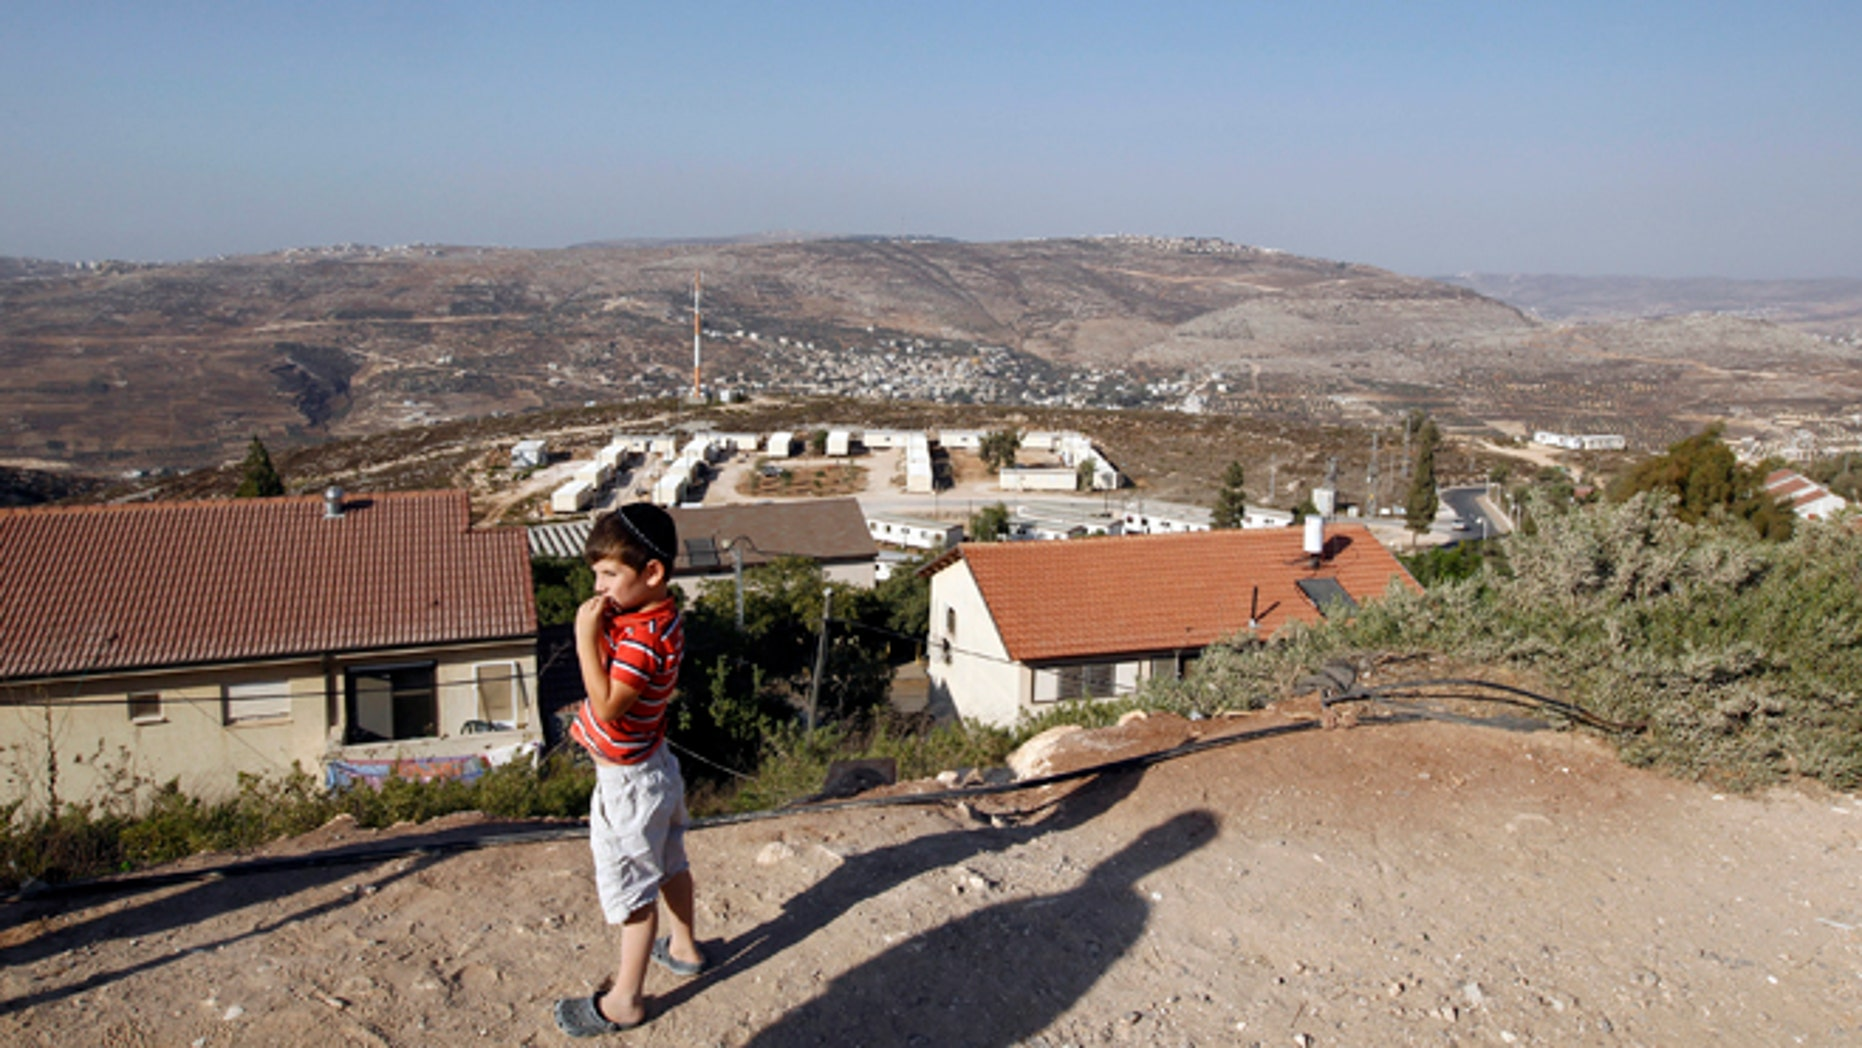 Sept. 20, 2010: A boy stands in the West Bank Jewish settlement of Yitzhar, south of Nablus.